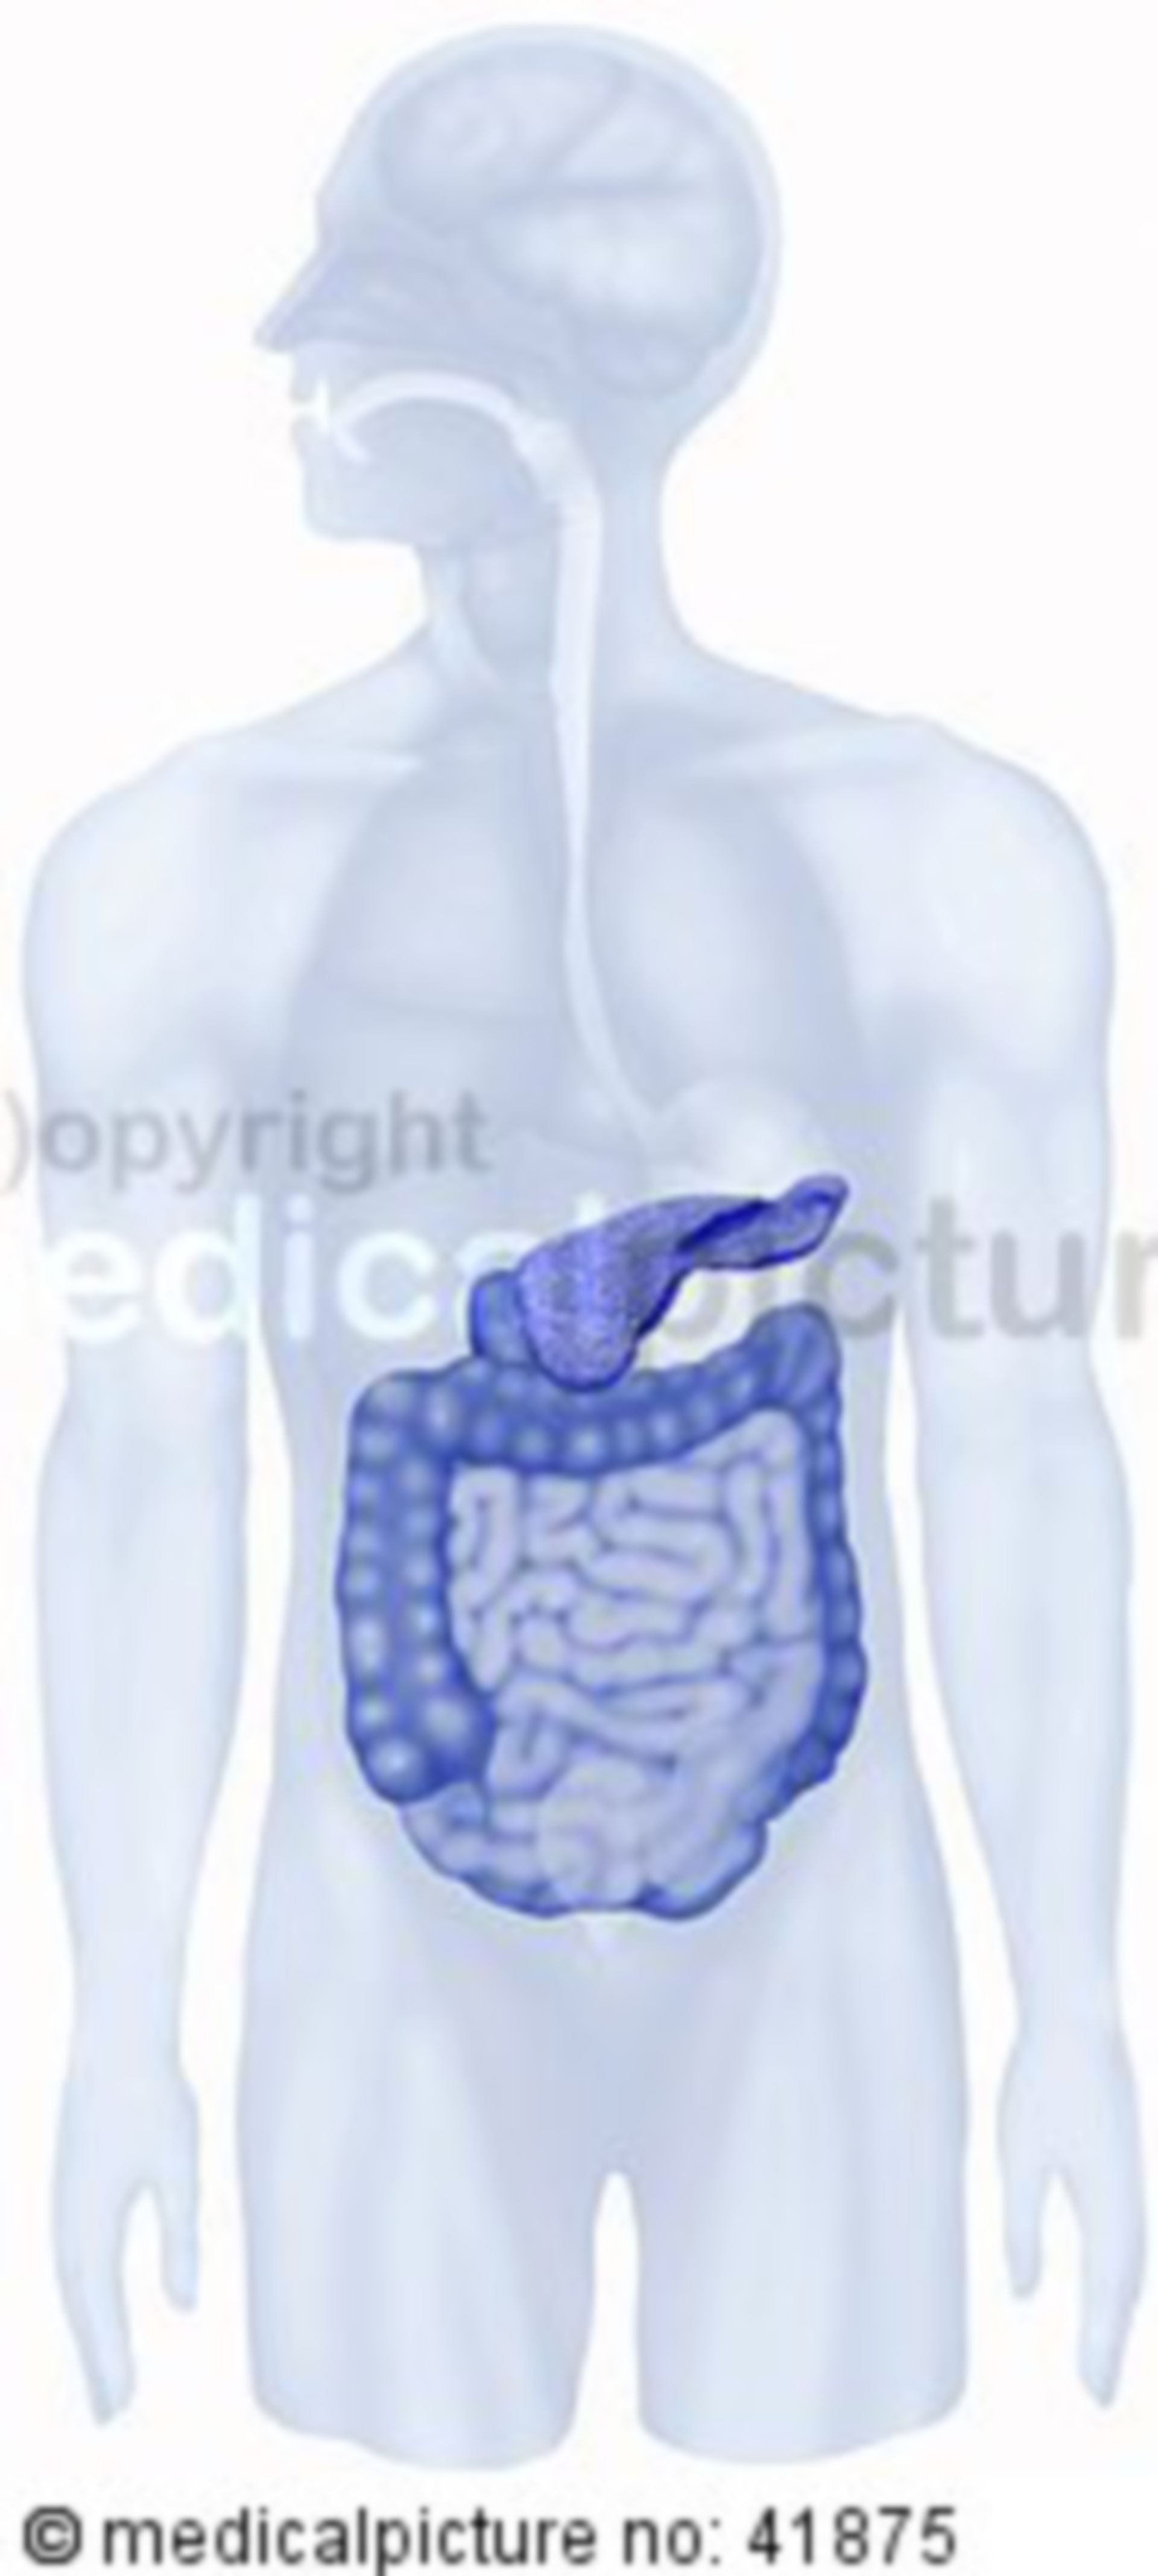 Pancreas and intestine